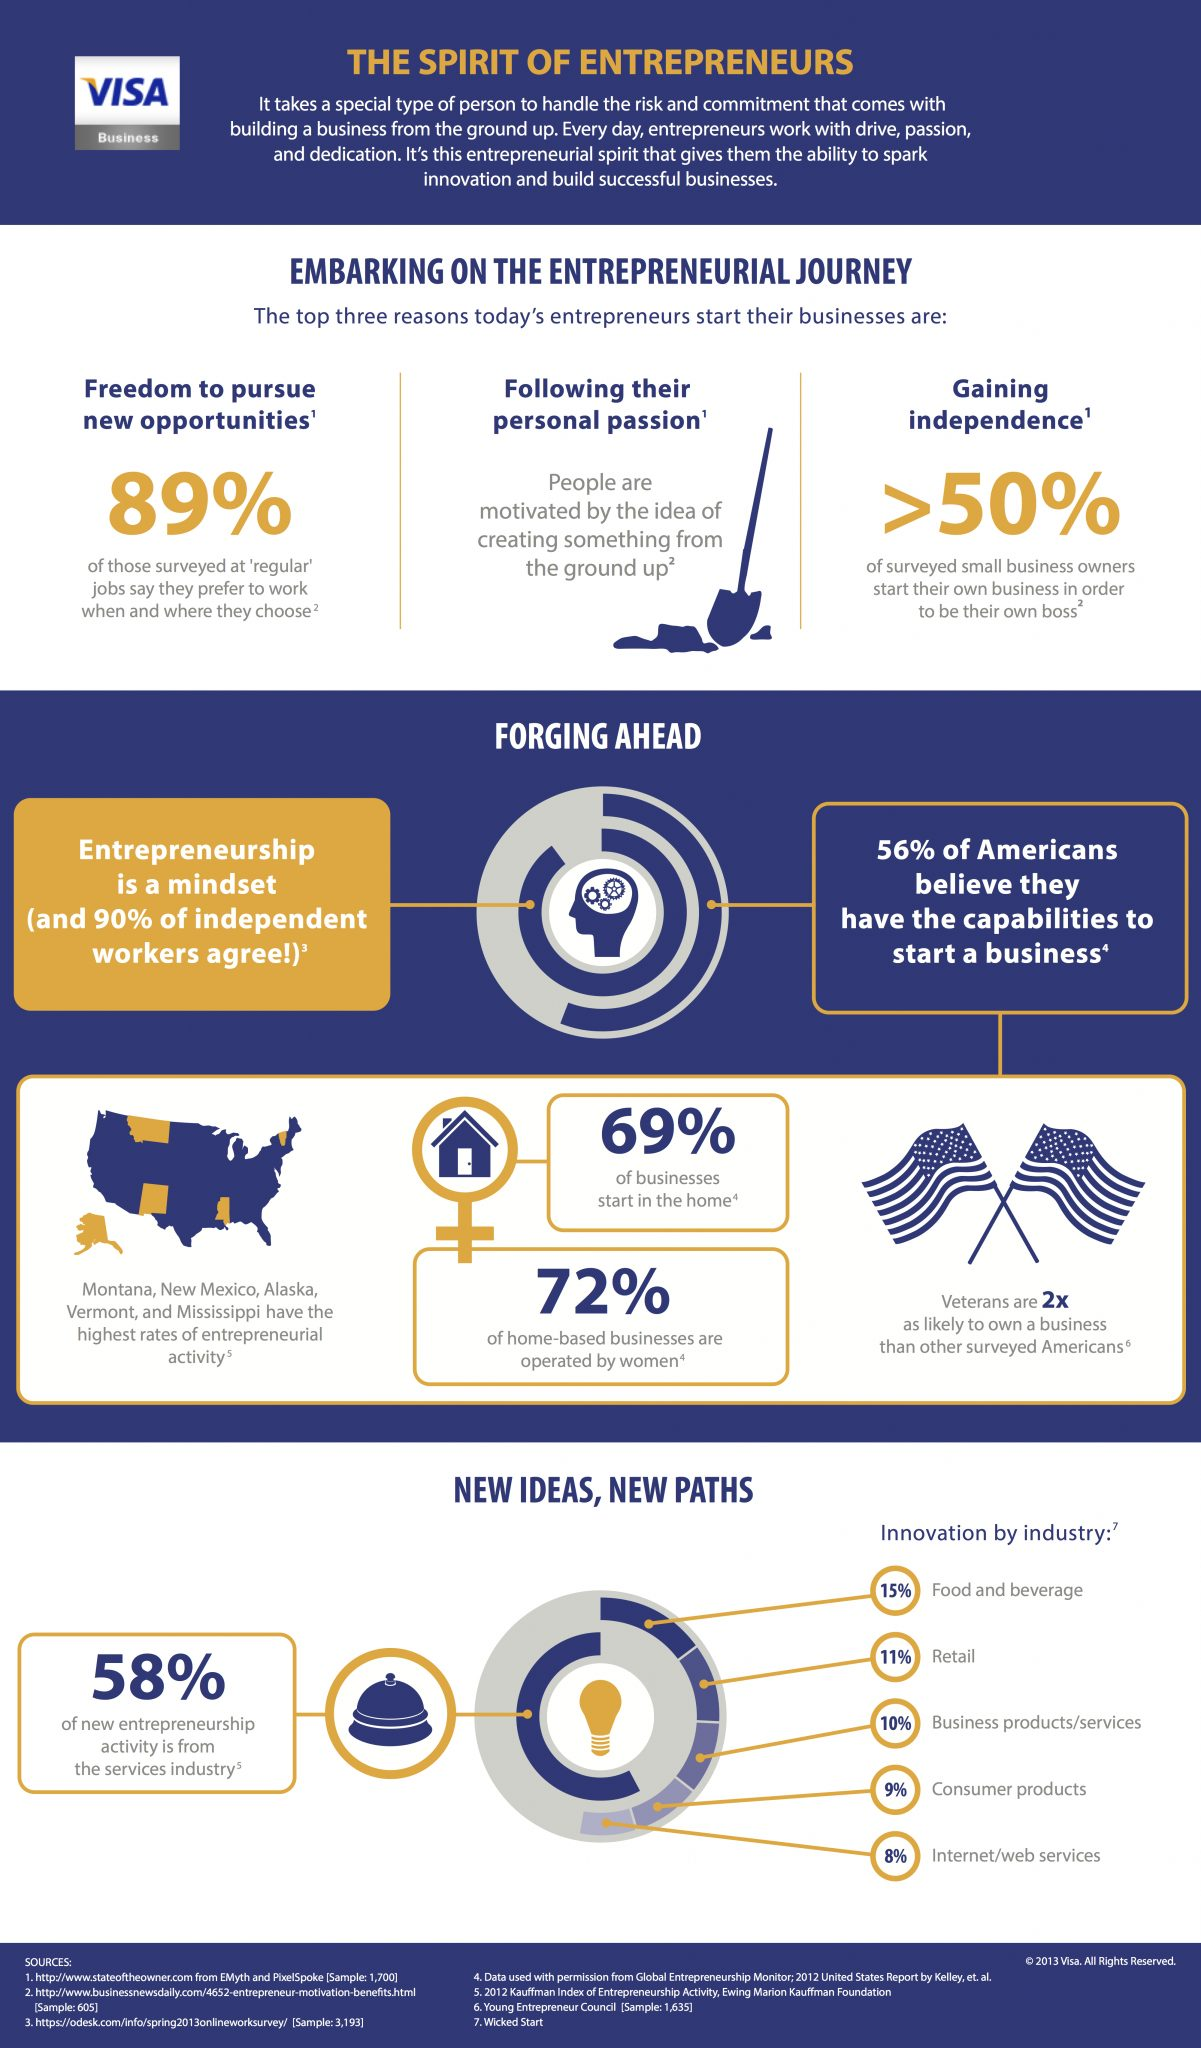 Visa Business_September Infographic_090513